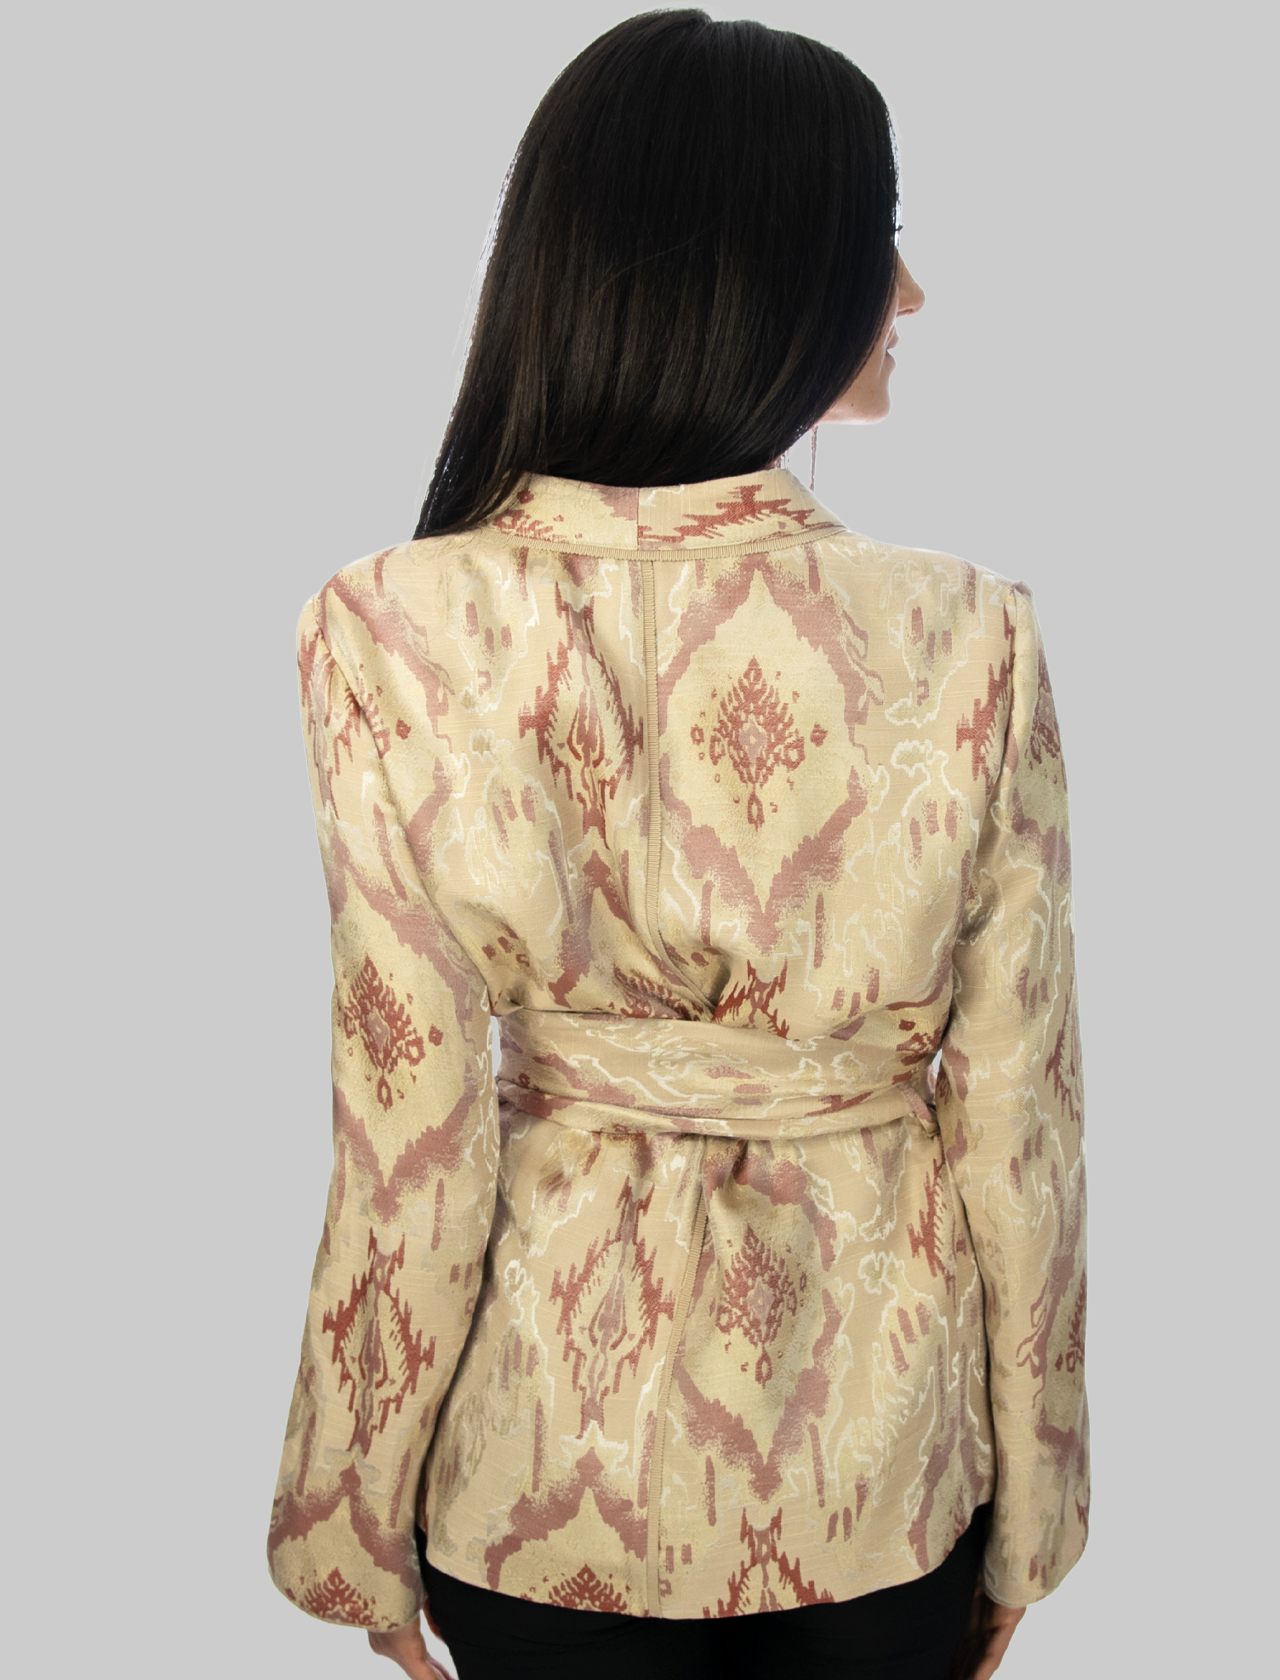 Women's Clothing Flora Light Jacquard Jacket in Natural Color and Embroideries Maliparmi | Jackets | JD639150559B1238